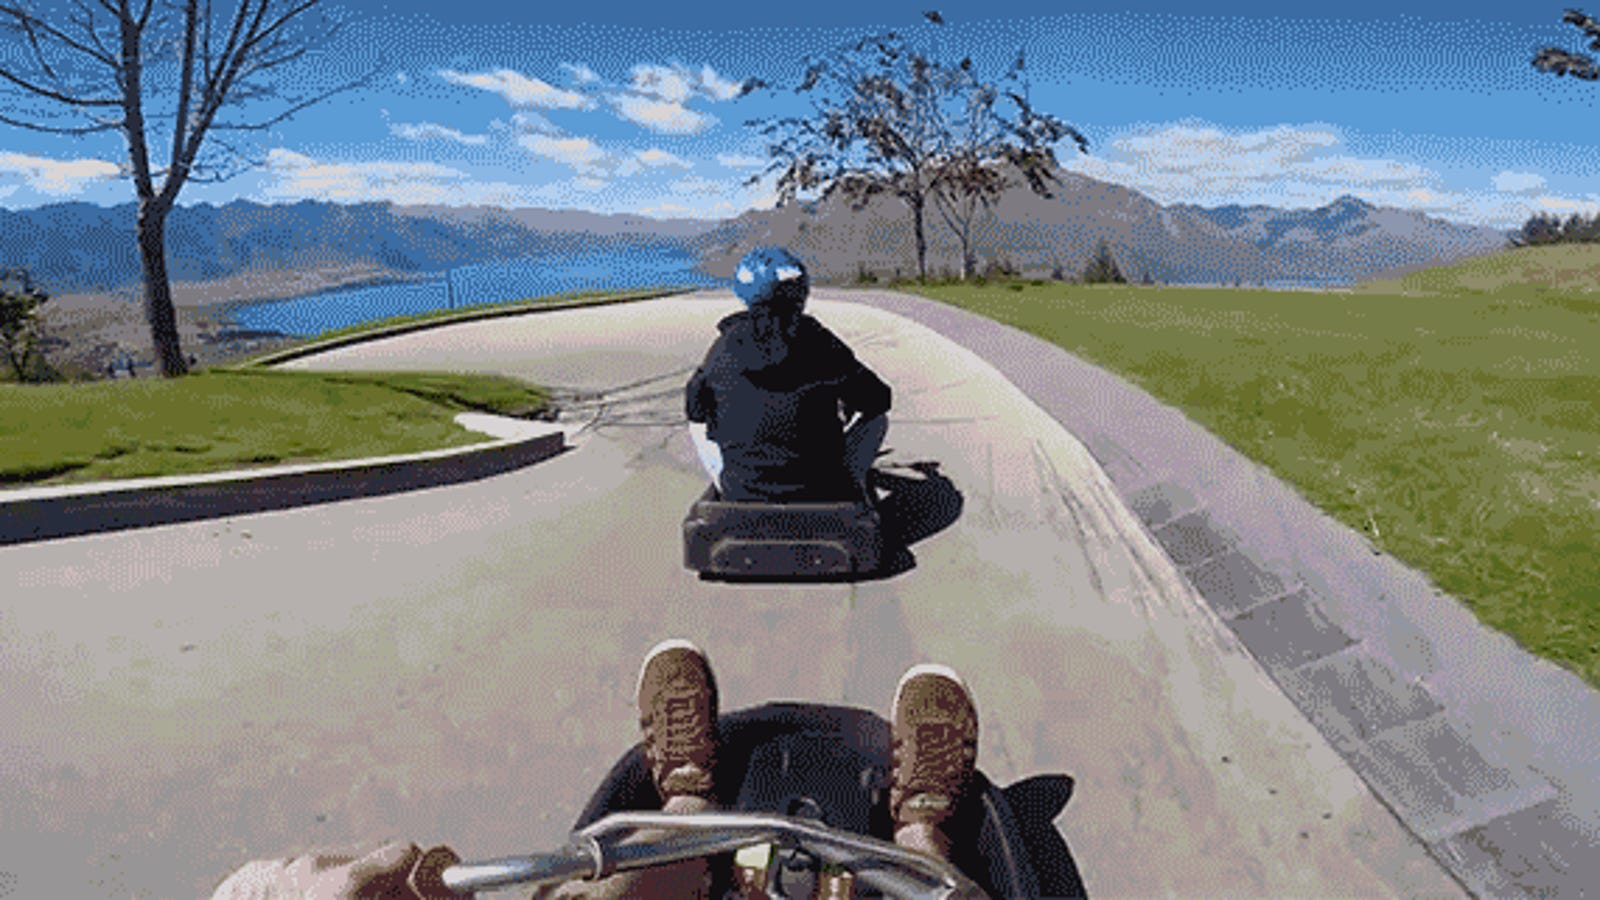 Go Karts Meet Luge On This Dangerously Fun Downhill Thrill Ride